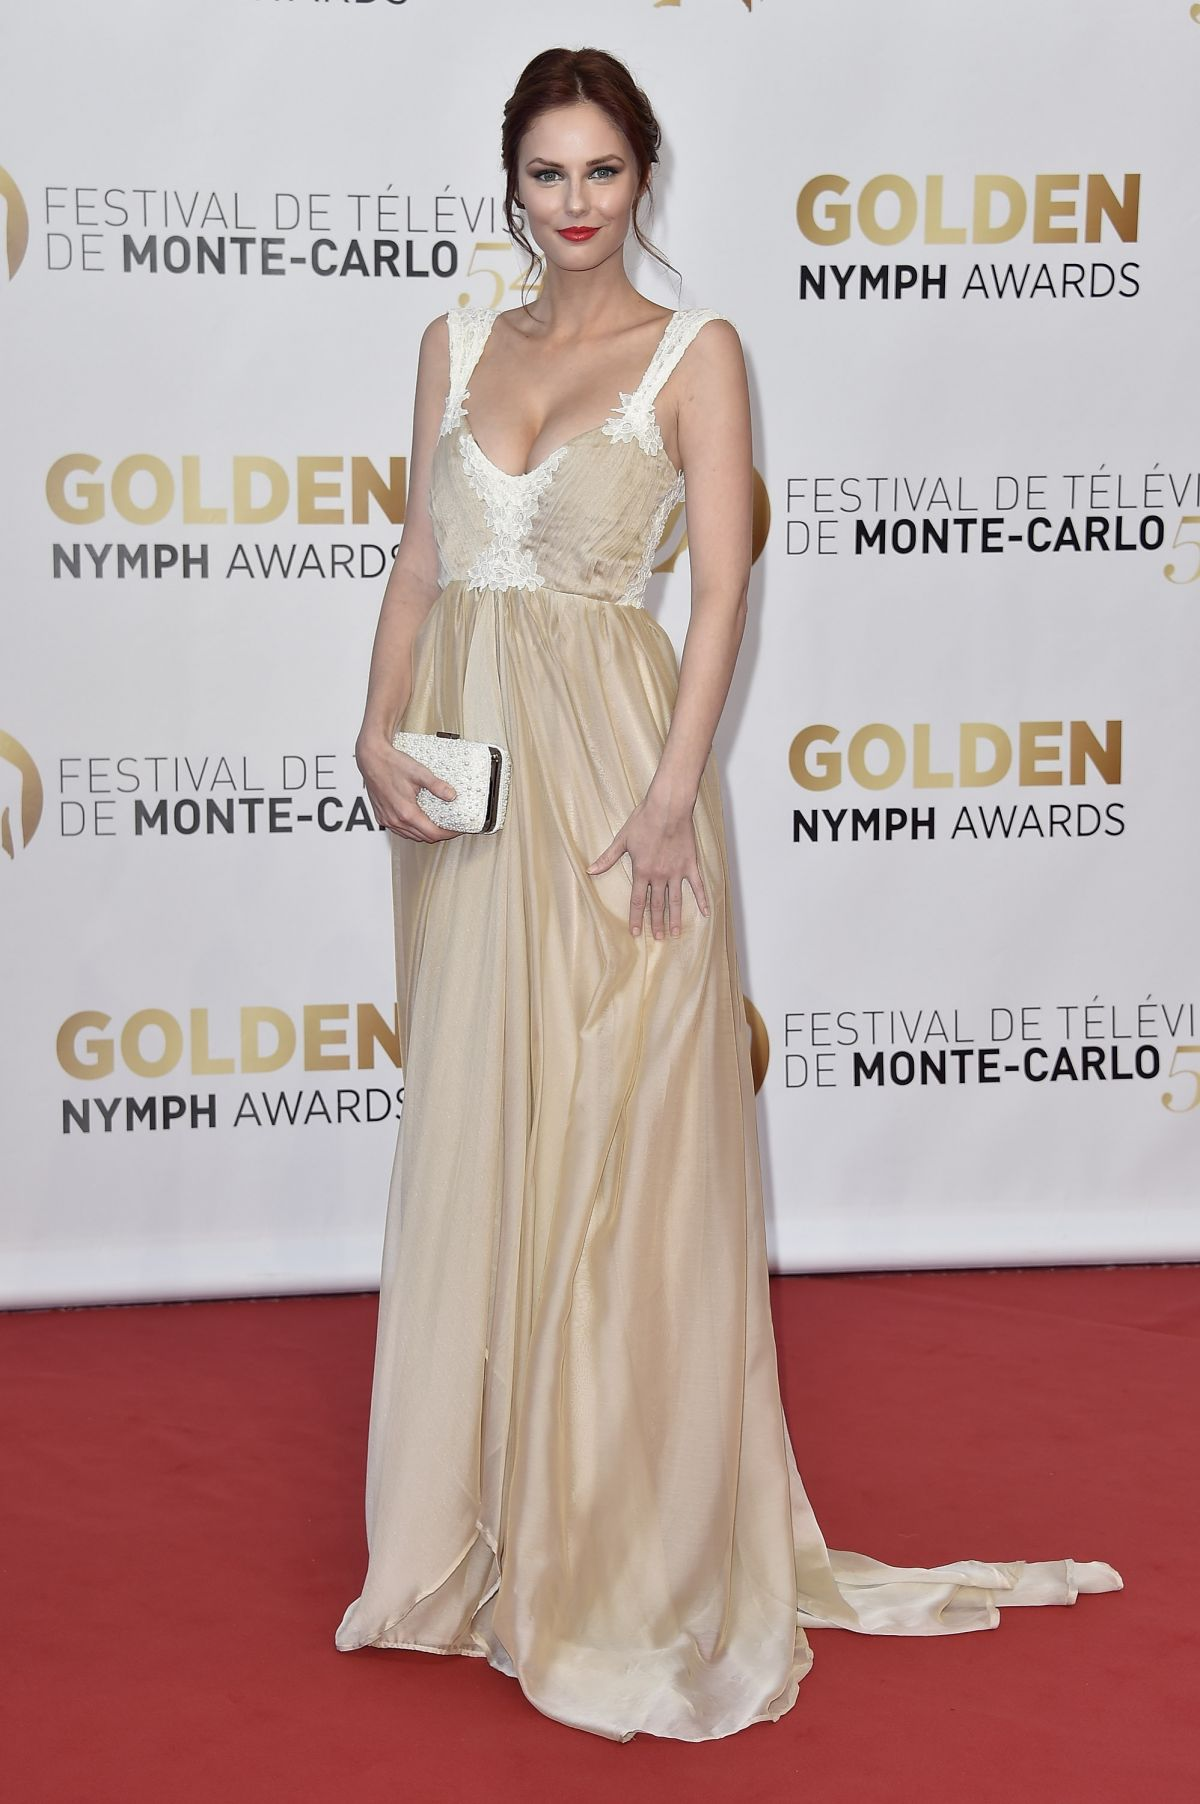 ALYSSA CAMPANELLA at 2014 Monte Carlo TV Festival Closing Ceremony